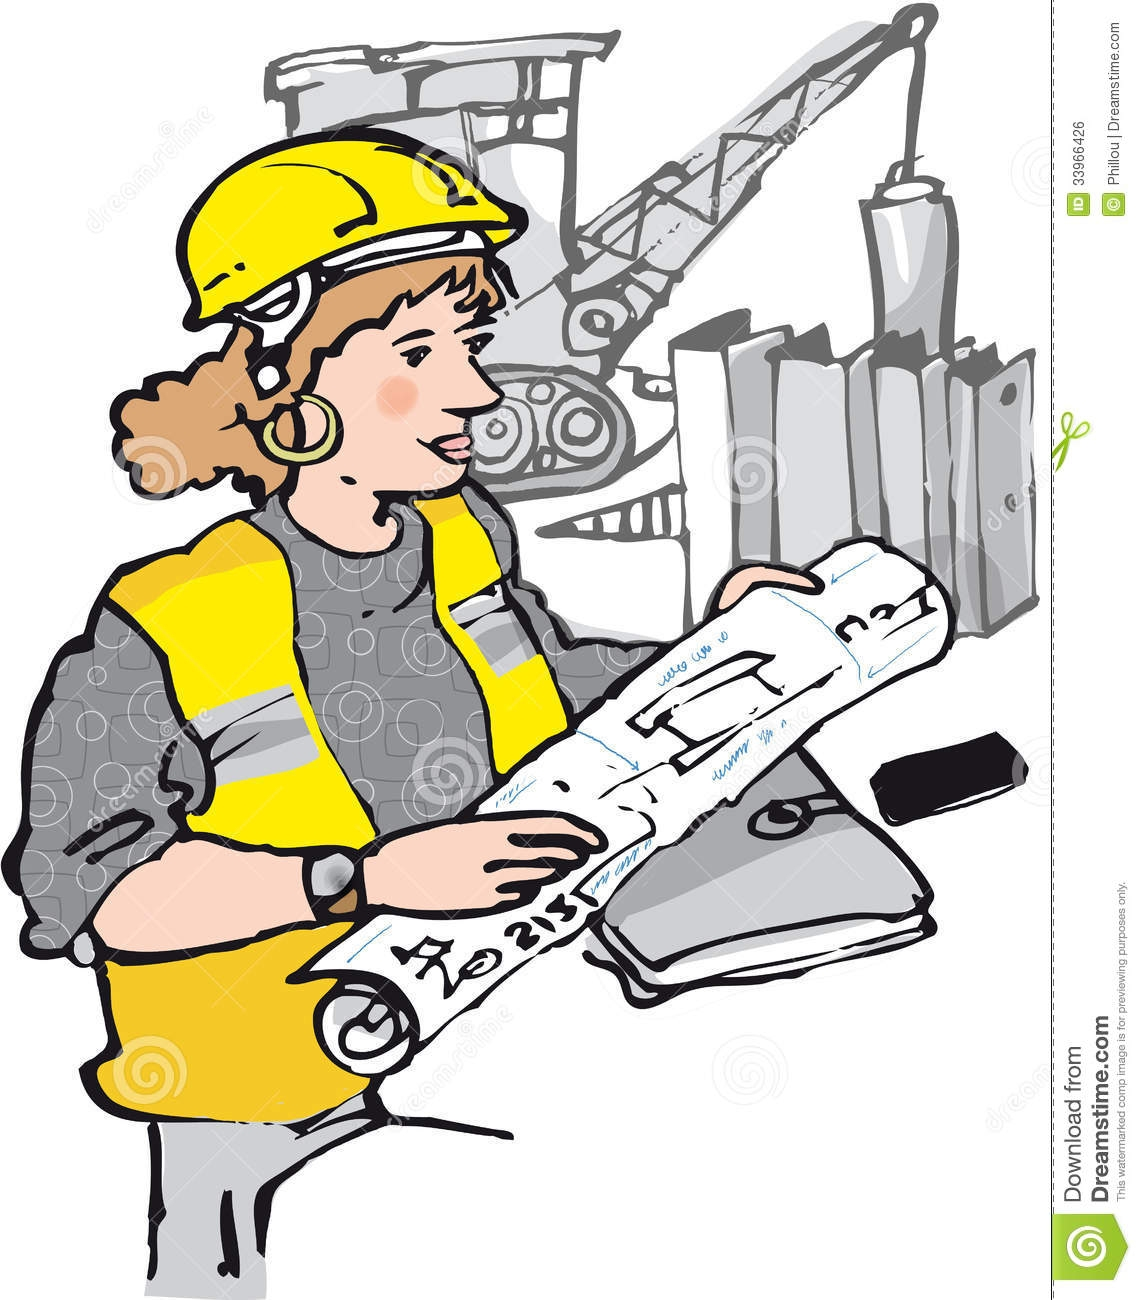 Engineering clipart civil engg. Engineer awesome